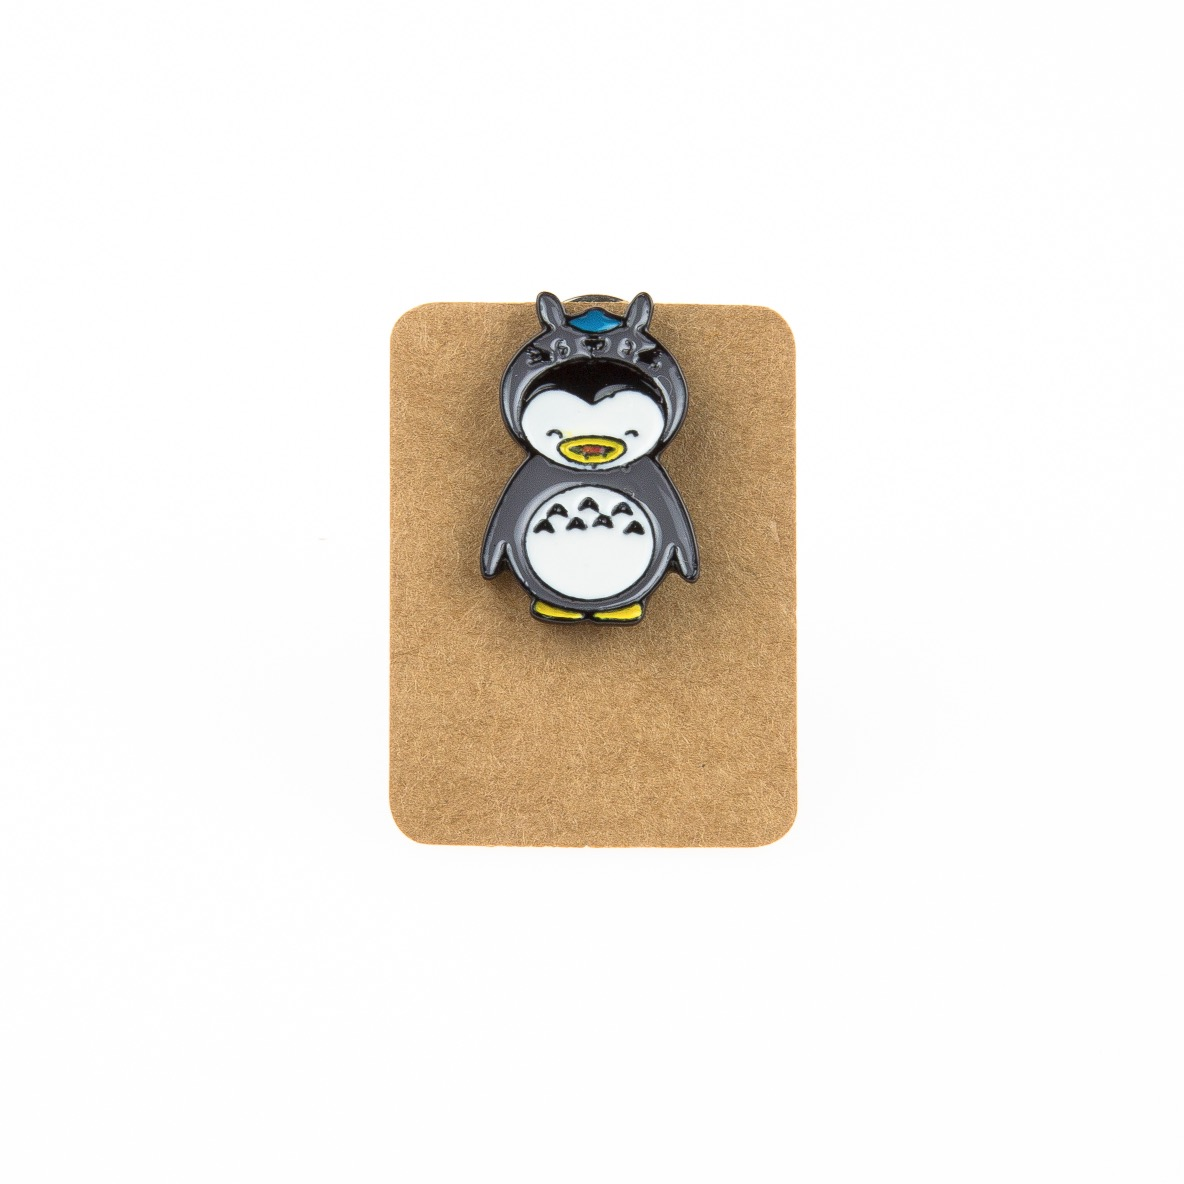 Metal Penguin Totoro Enamel Pin Badge